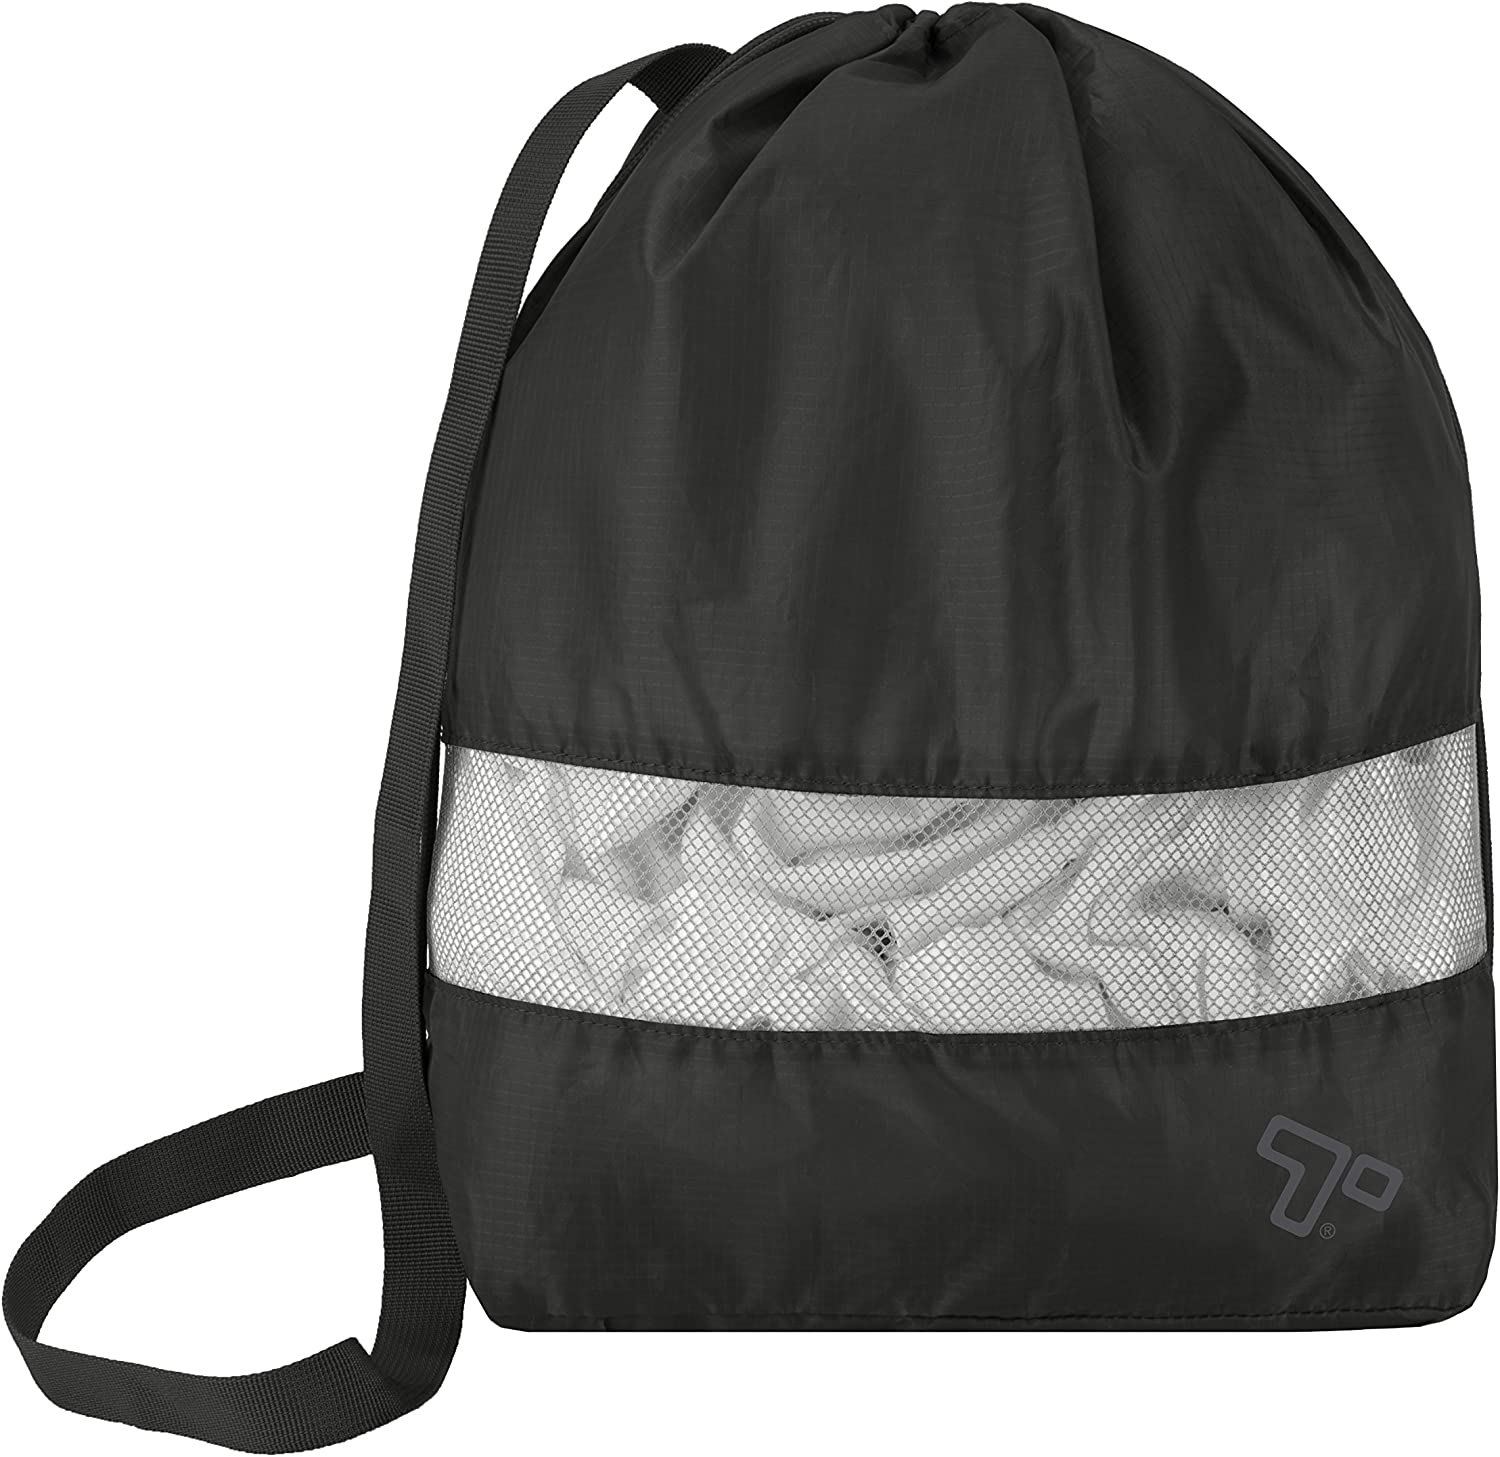 Travelon Laundry Bag